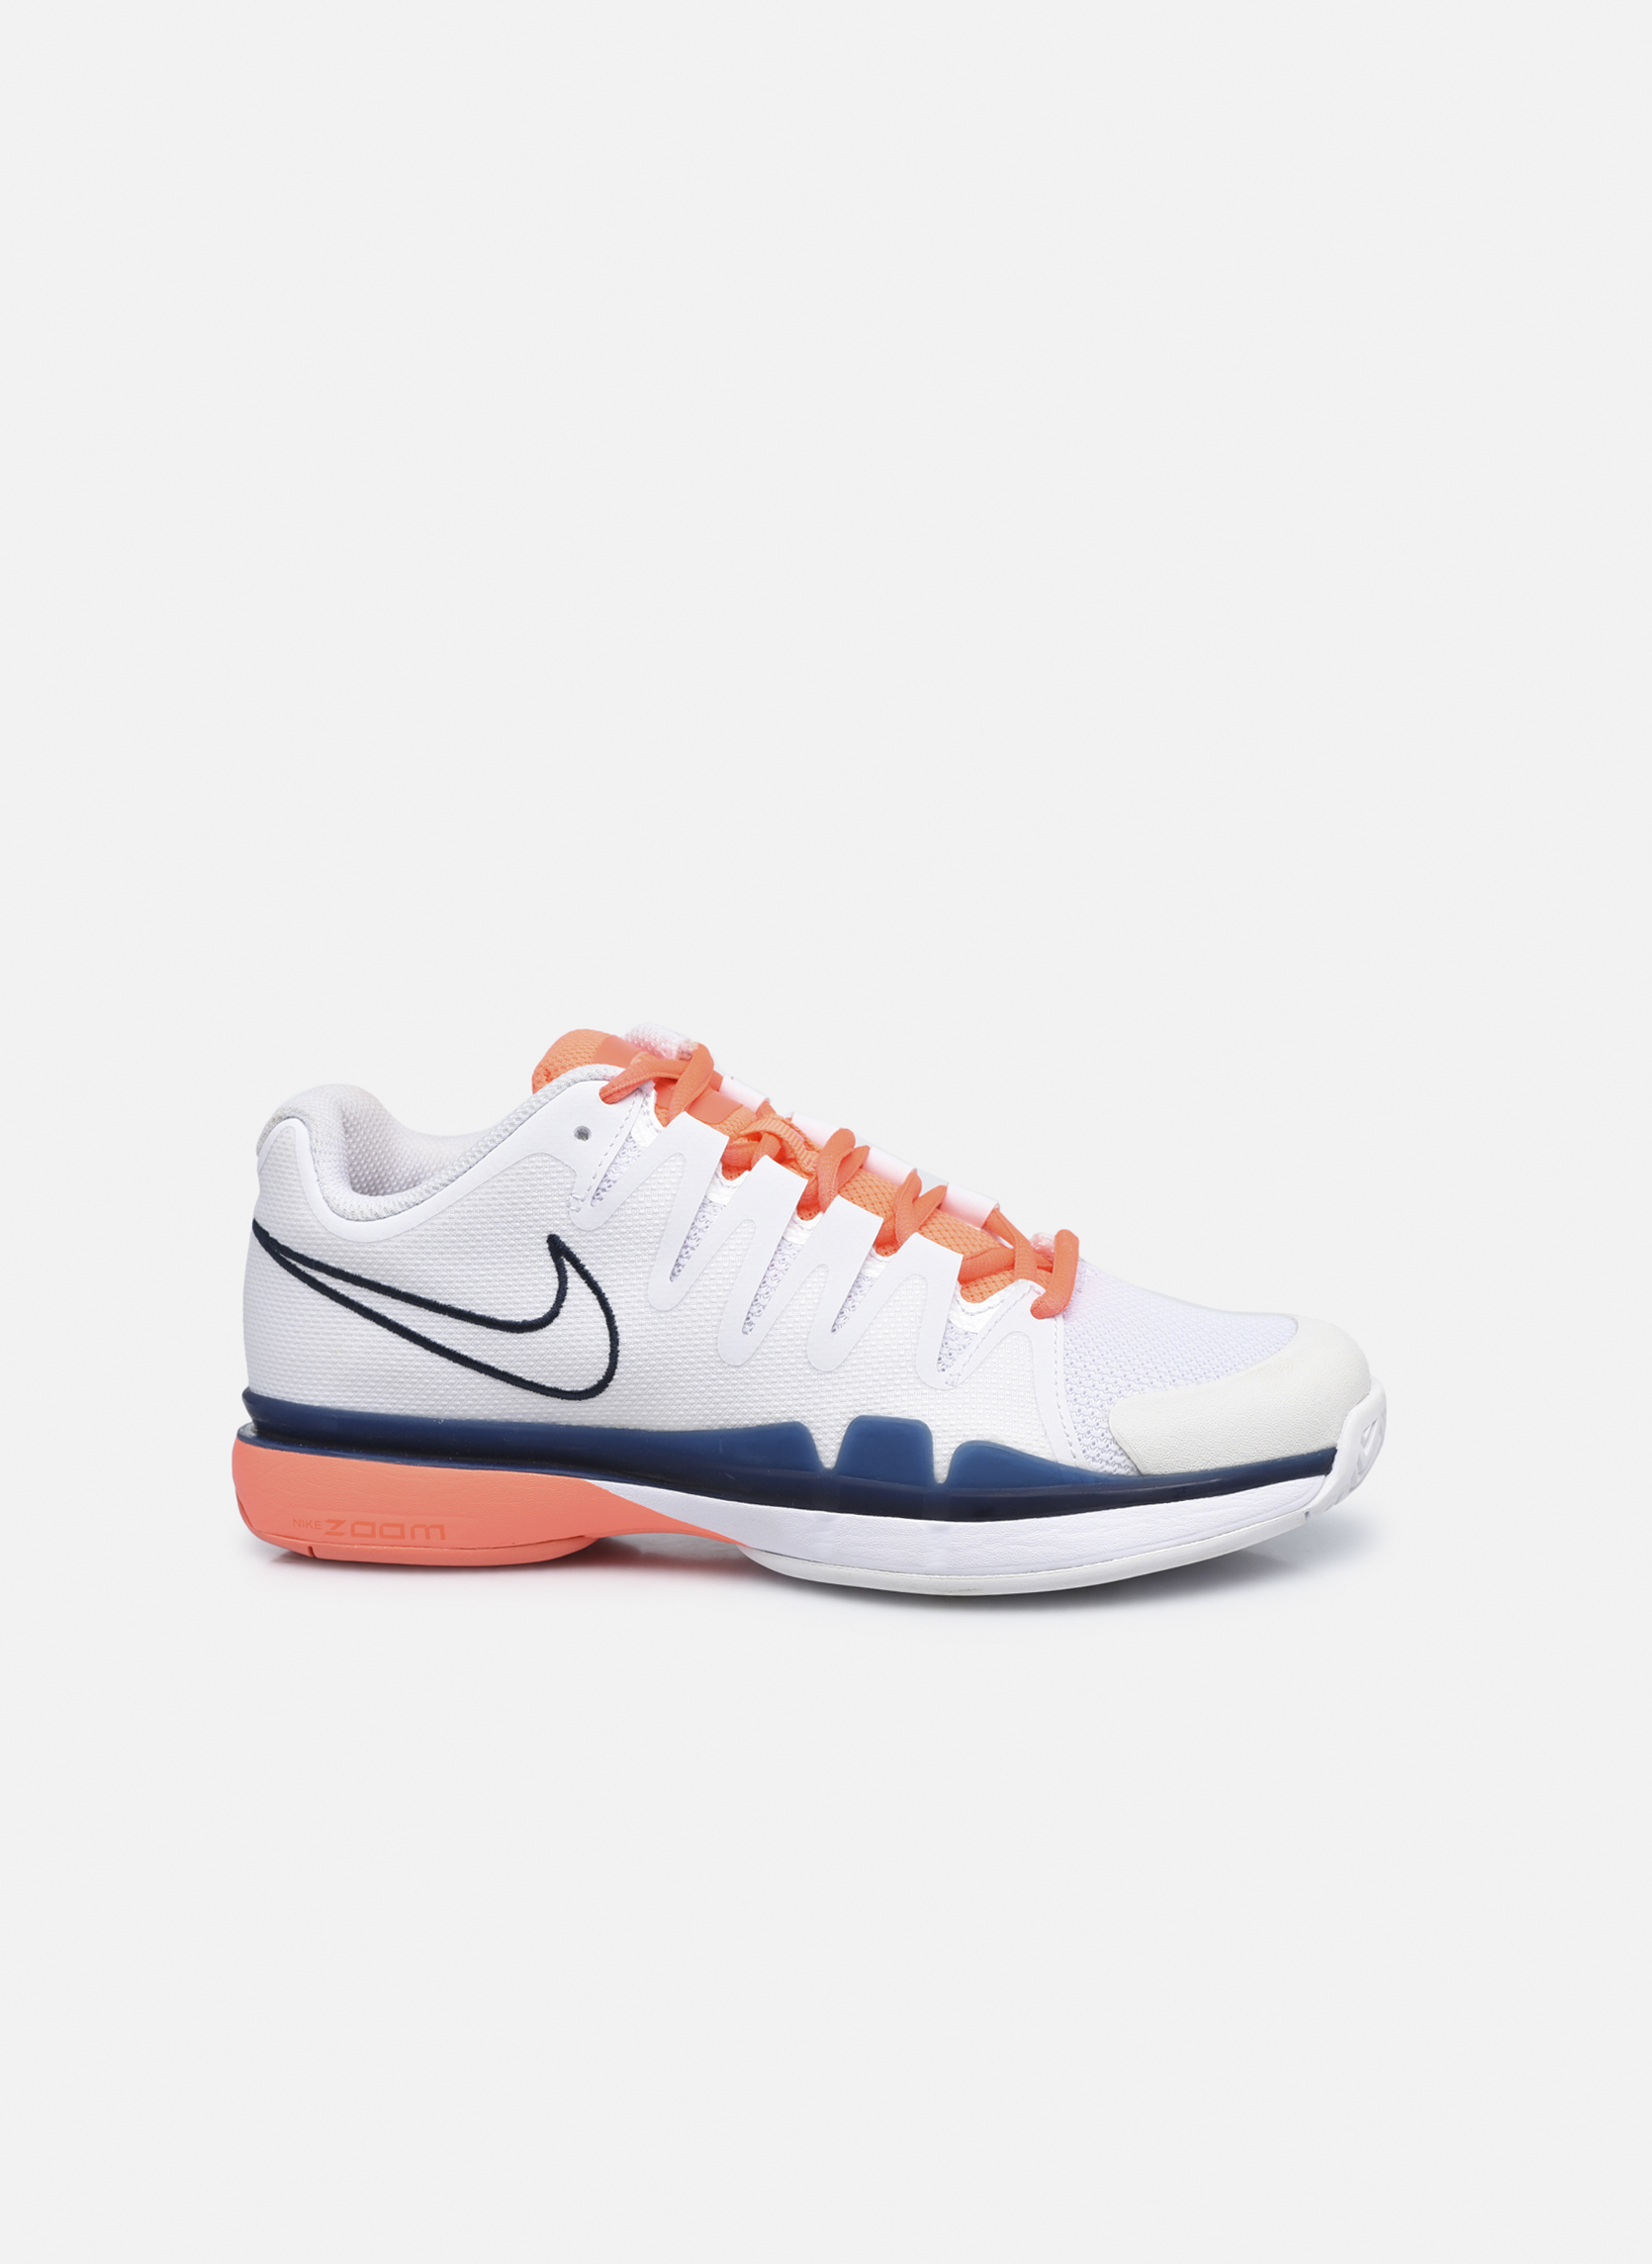 Nike Zoom Vapor 9.5 Tour White/Obsdn-Brght Mng-Ttl Crms